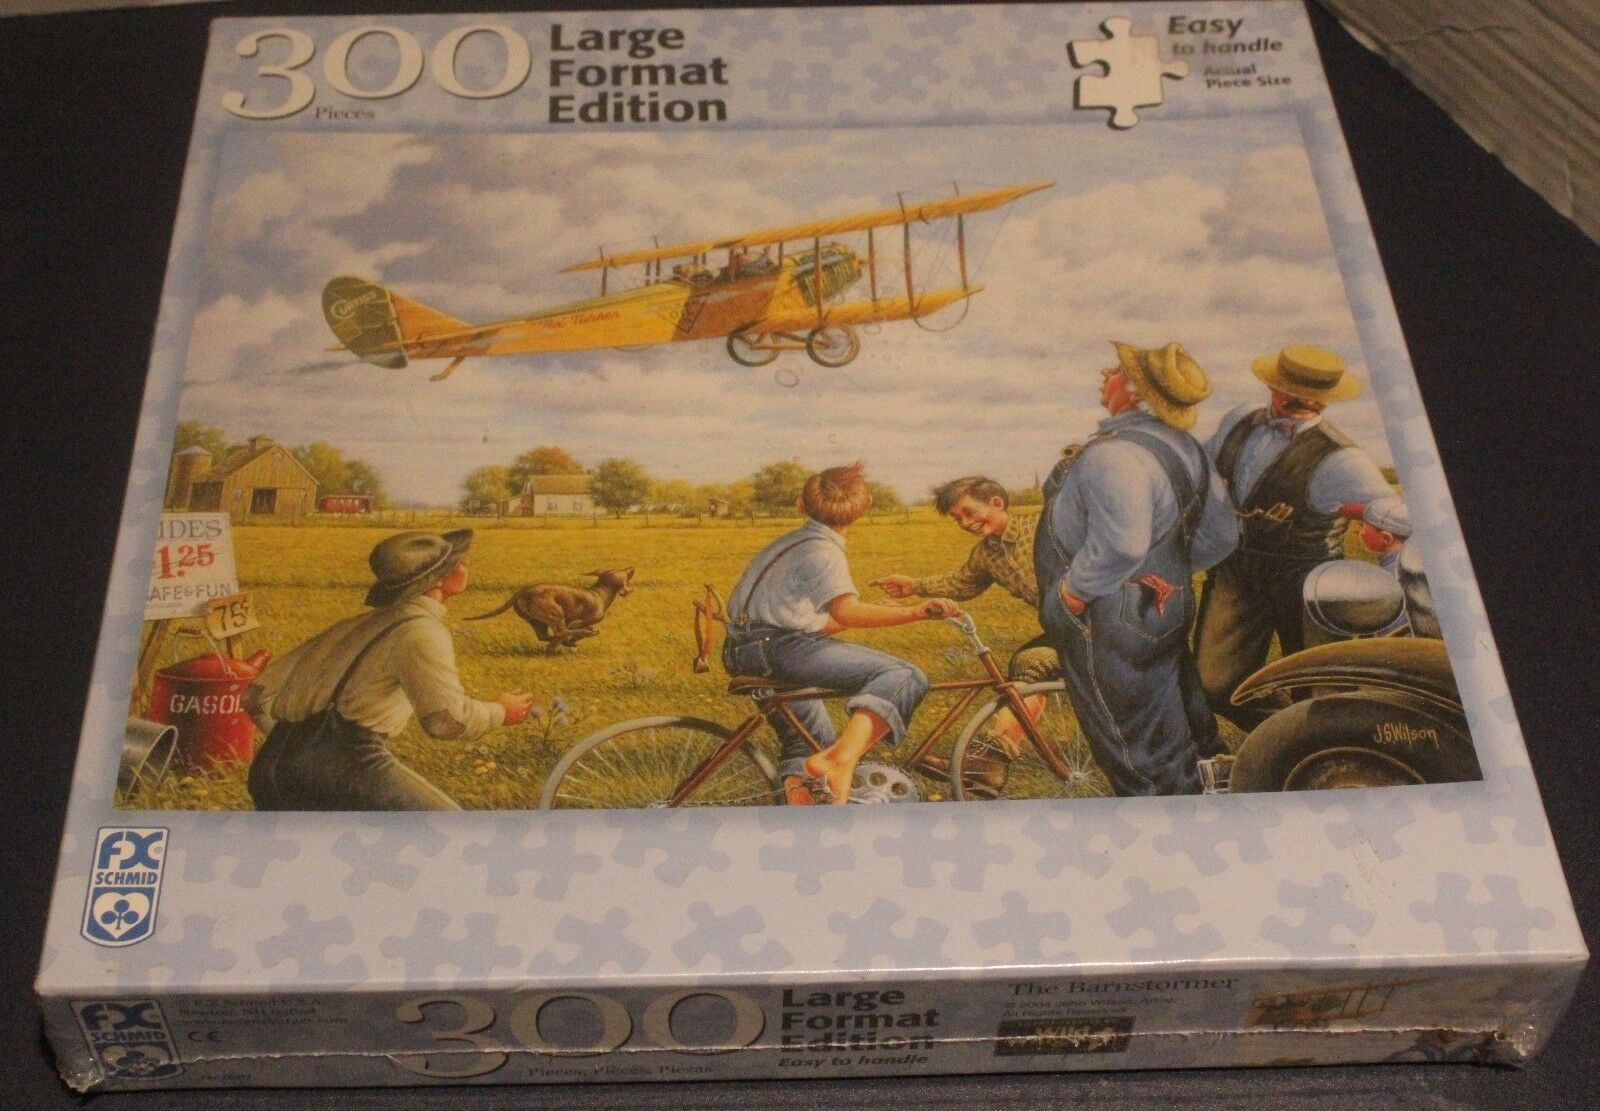 The Barnstormer - 300 piece FX Schmid Large Format Puzzle NIB NEW IN BOX